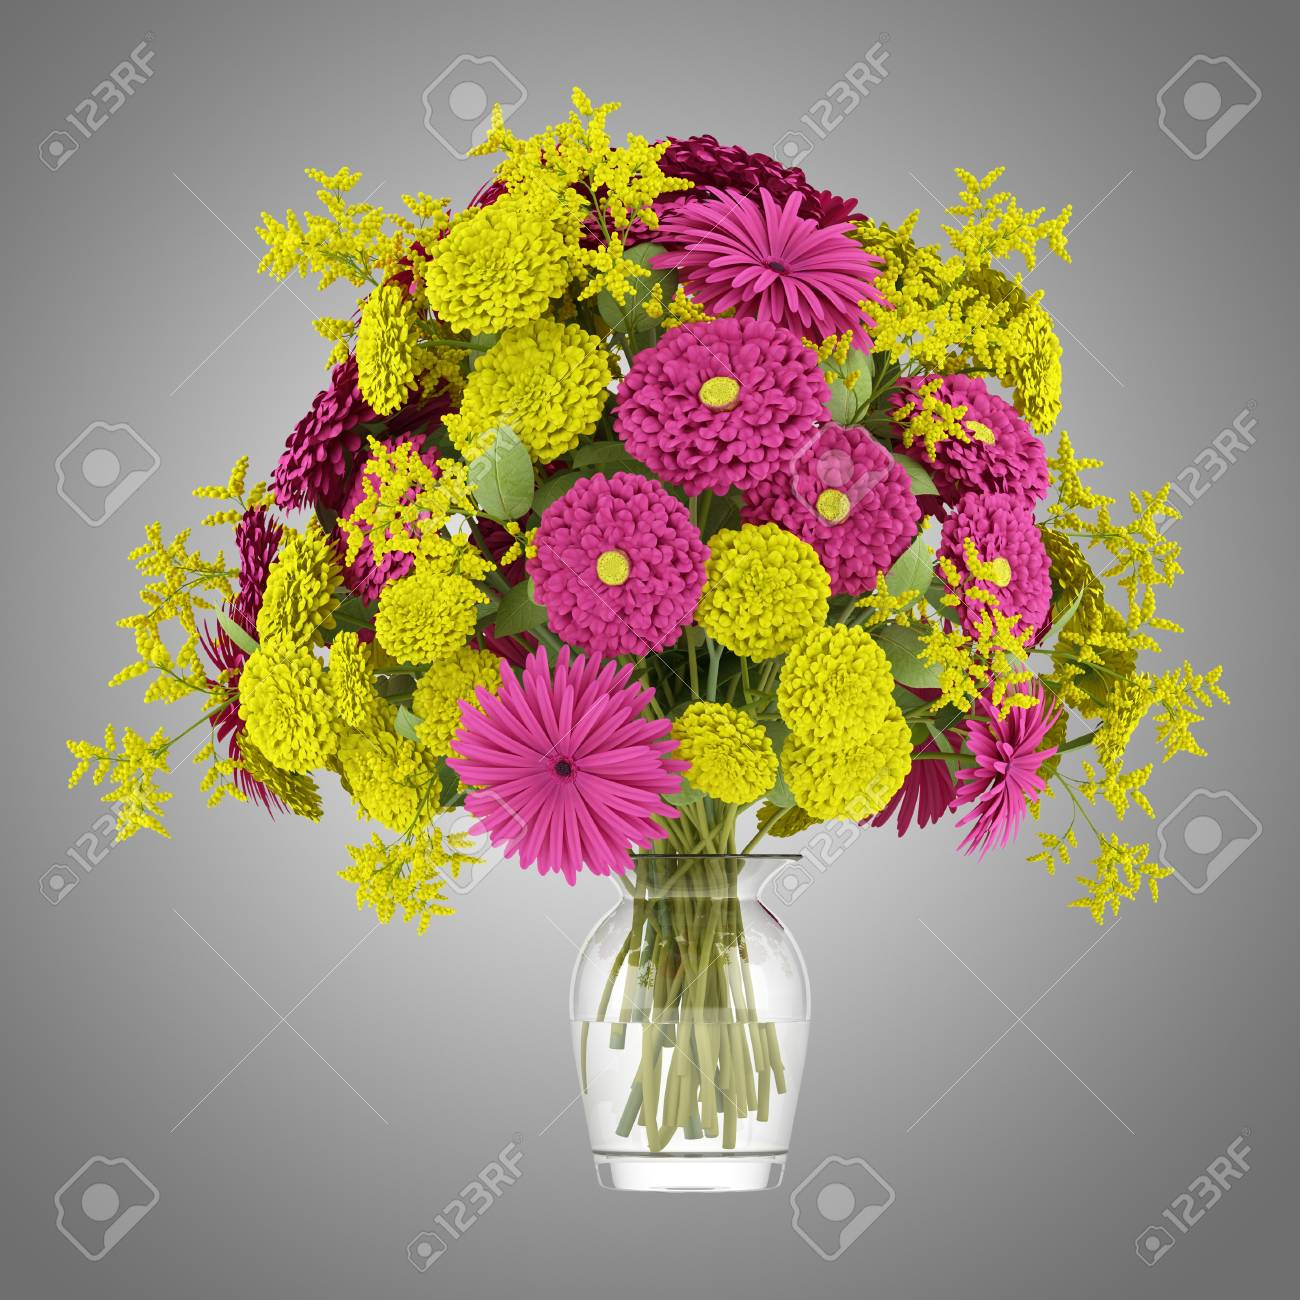 Bouquet Of Yellow And Purple Flowers In Vase Isolated On Gray